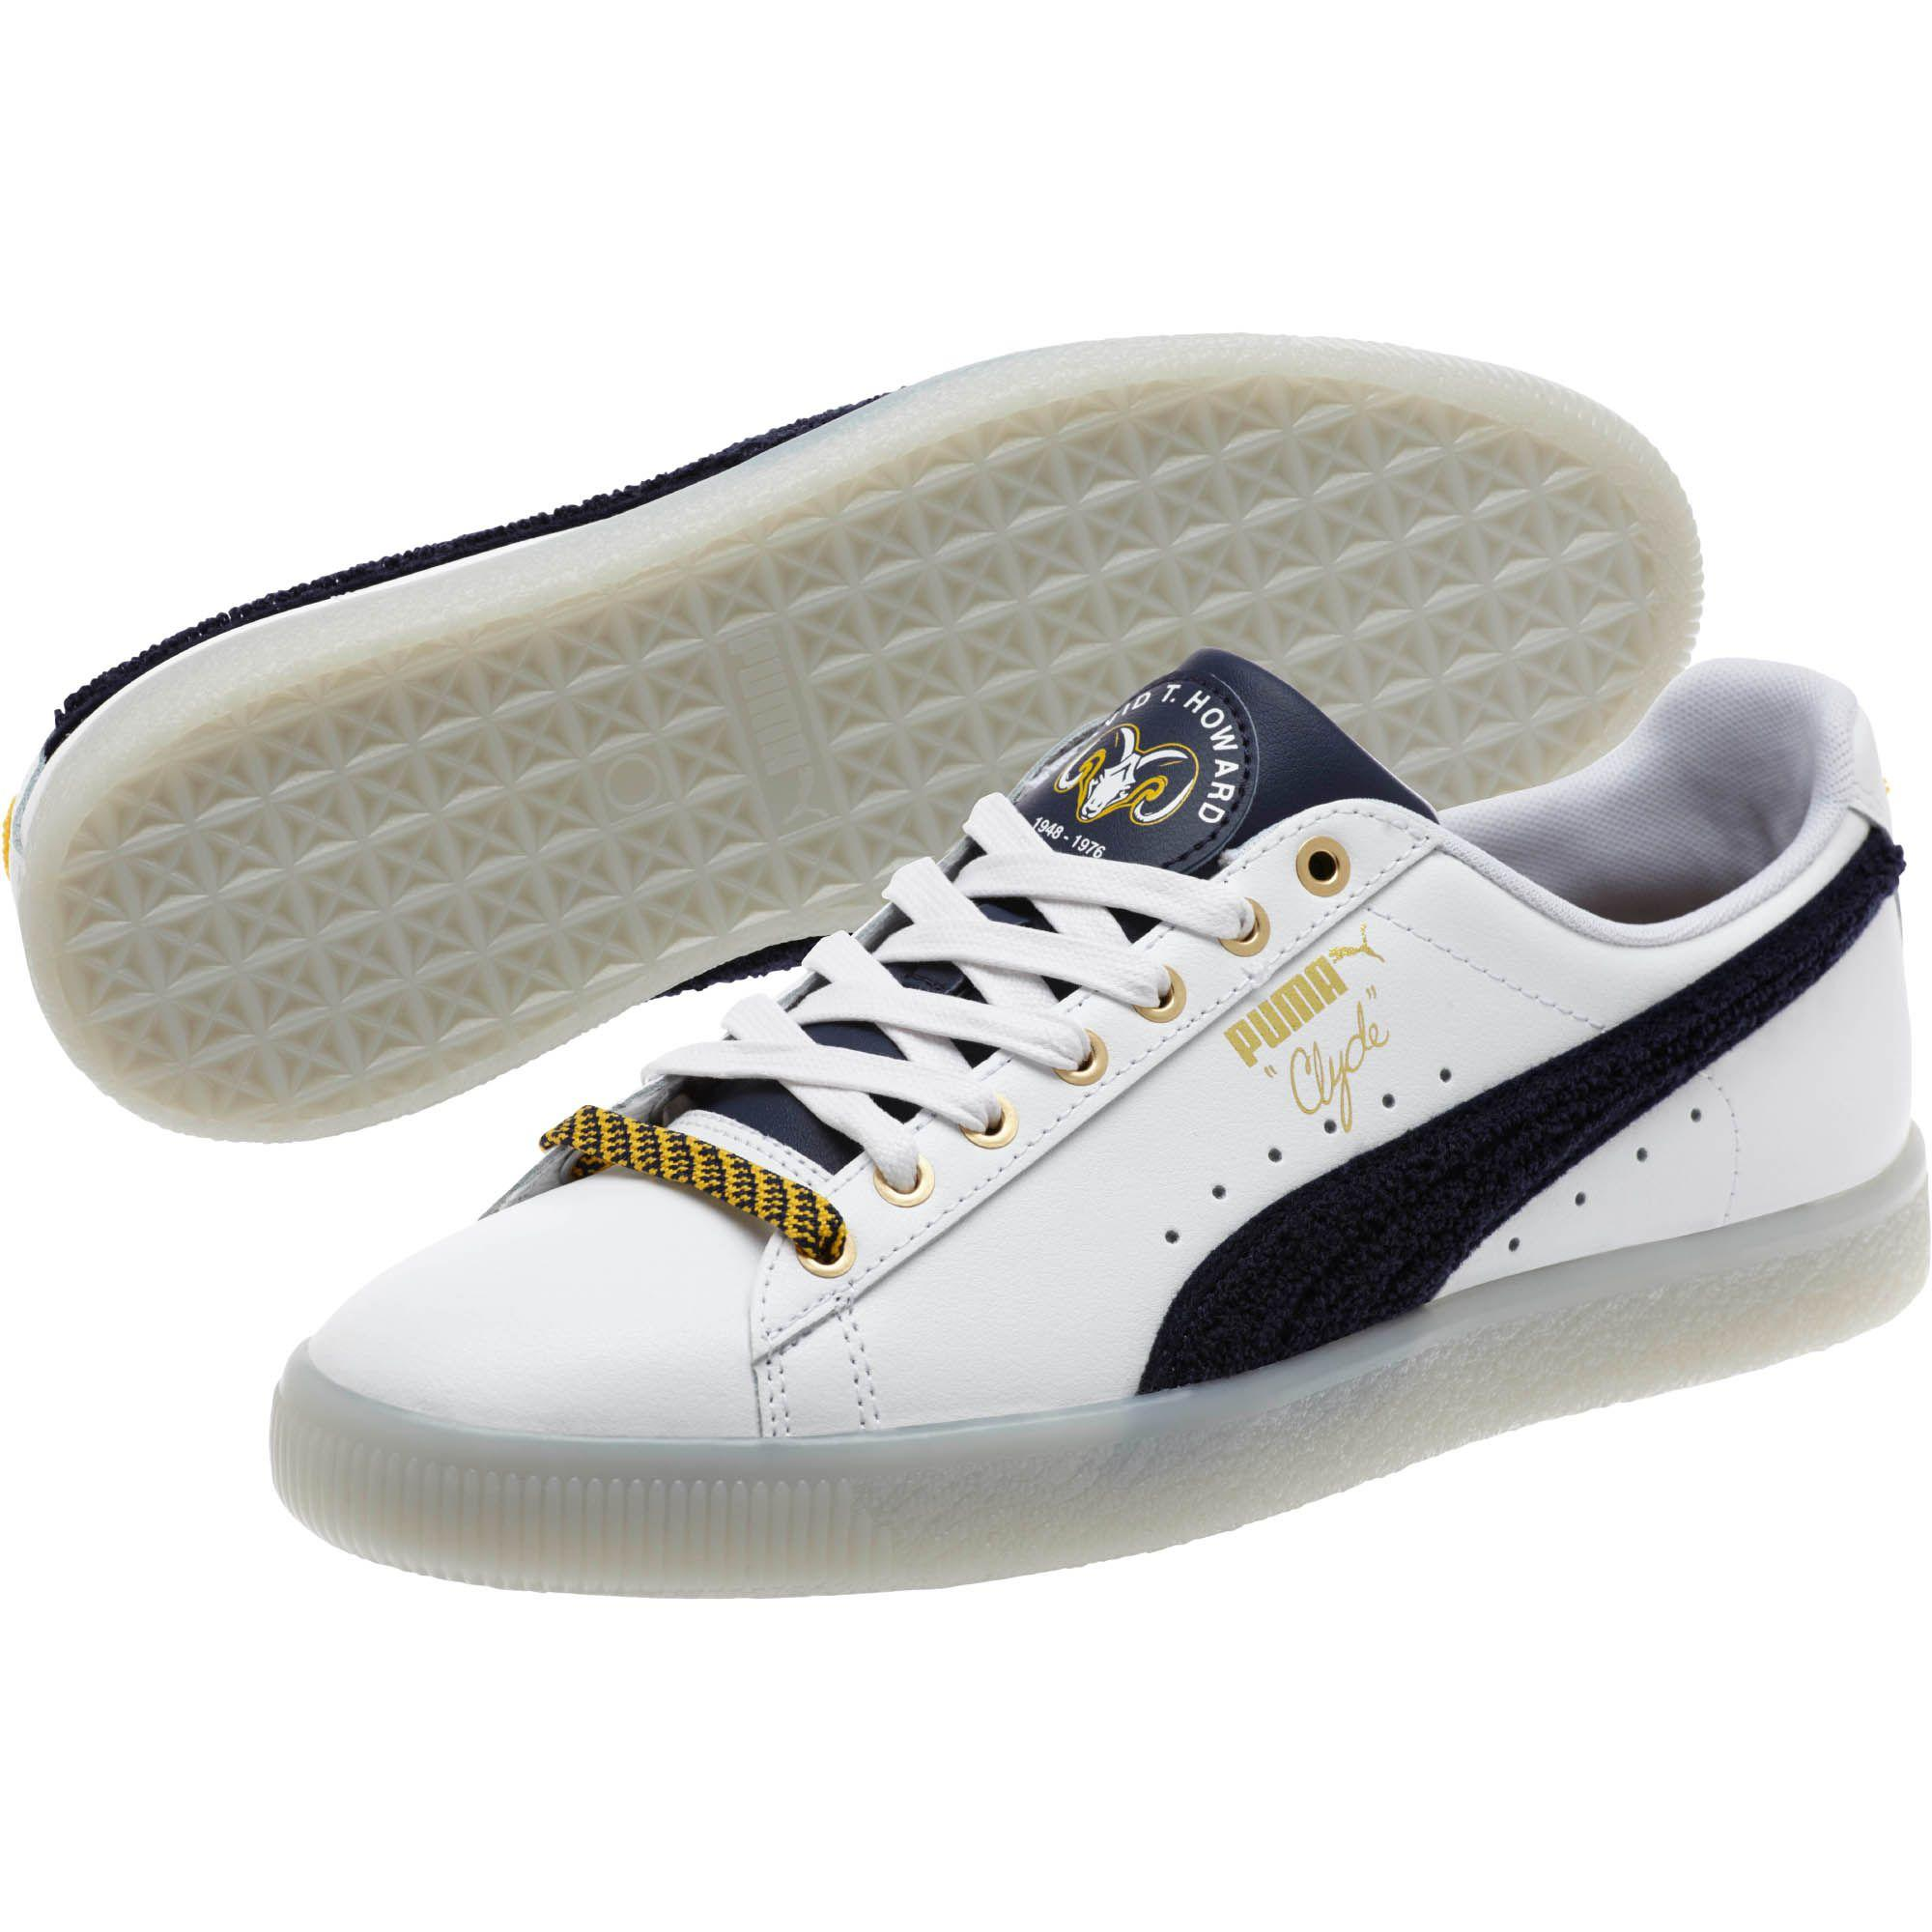 Lyst - PUMA Legacy Collection Clyde Leather Men s Sneakers in White ... f2cb70051